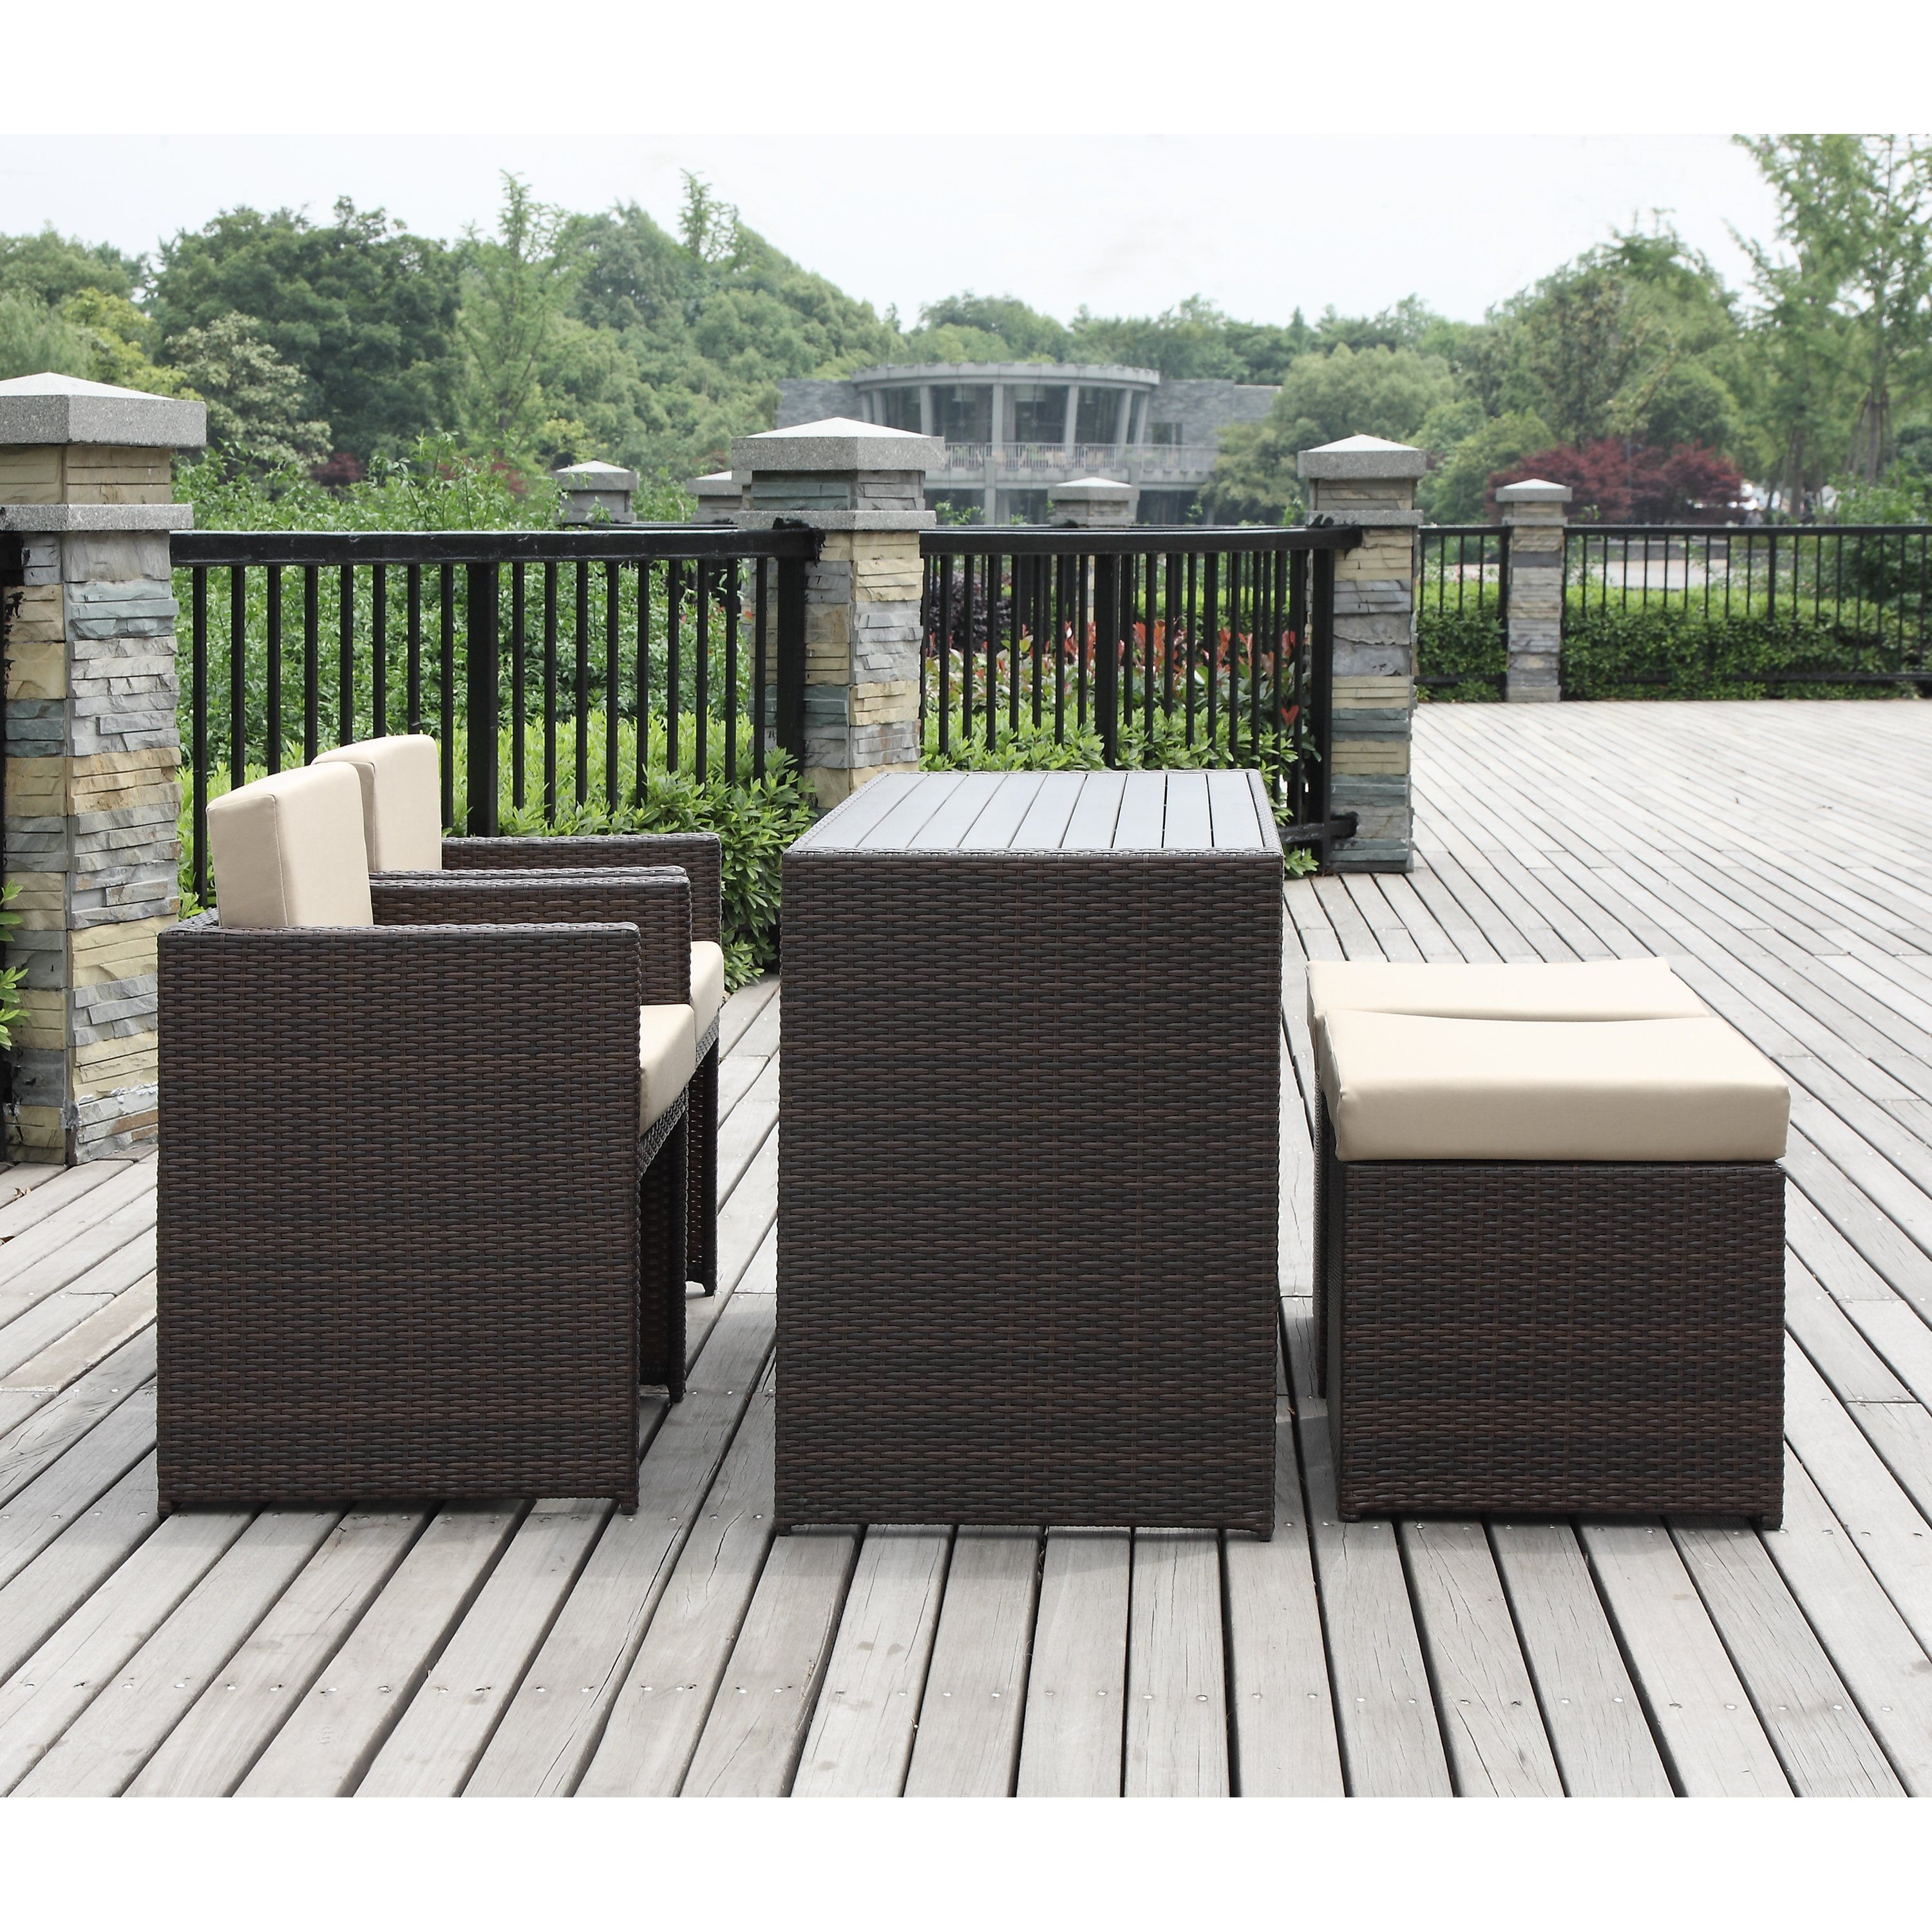 Beachcrest home lisa 5 piece seating group with cushion